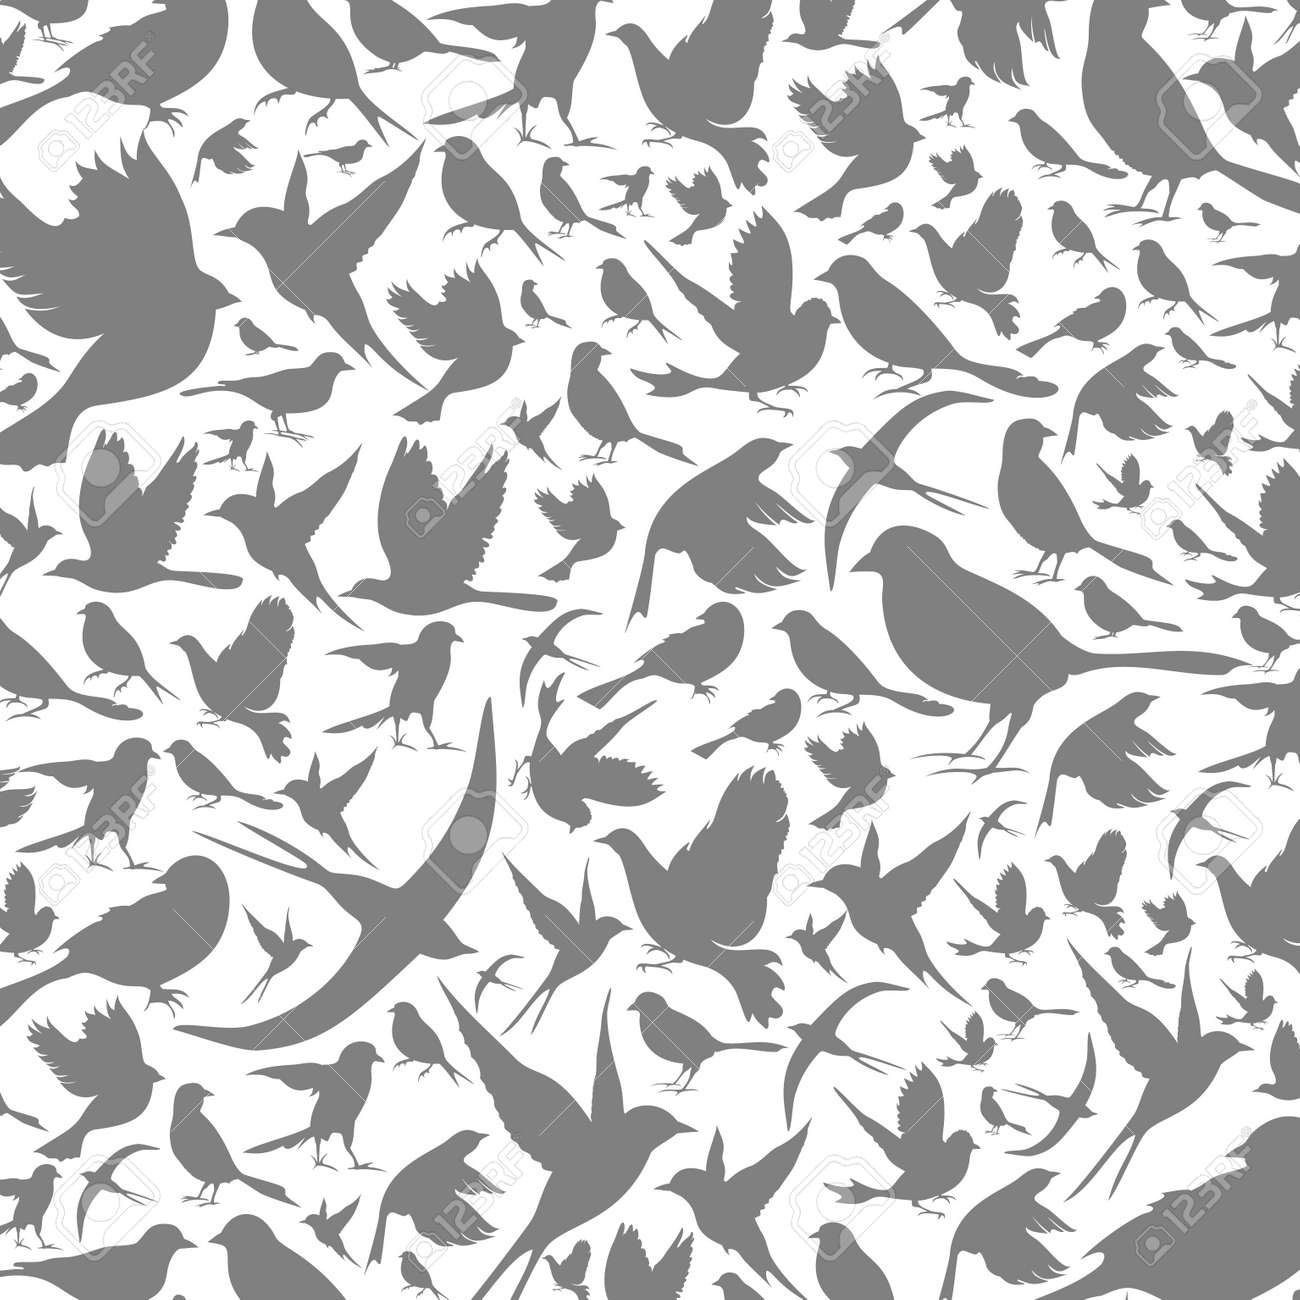 Background made of birds Stock Vector - 15893701